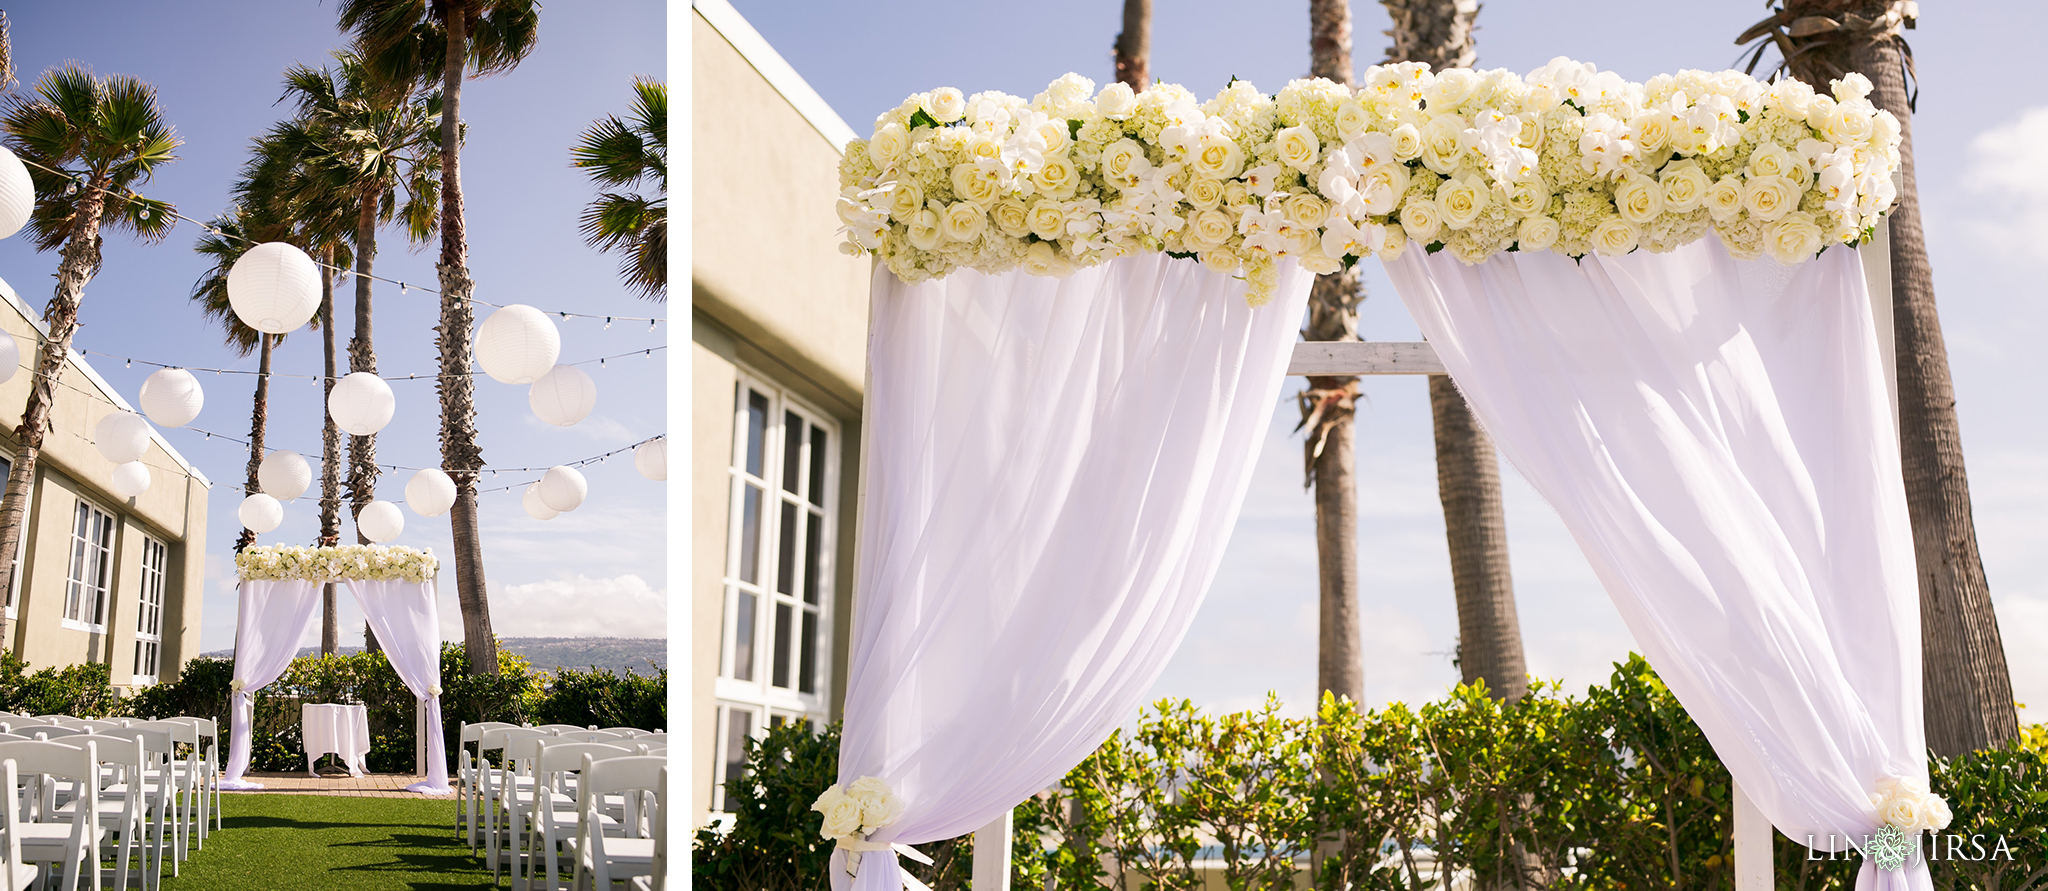 14 The Portofino Hotel Redondo Beach Wedding Photography